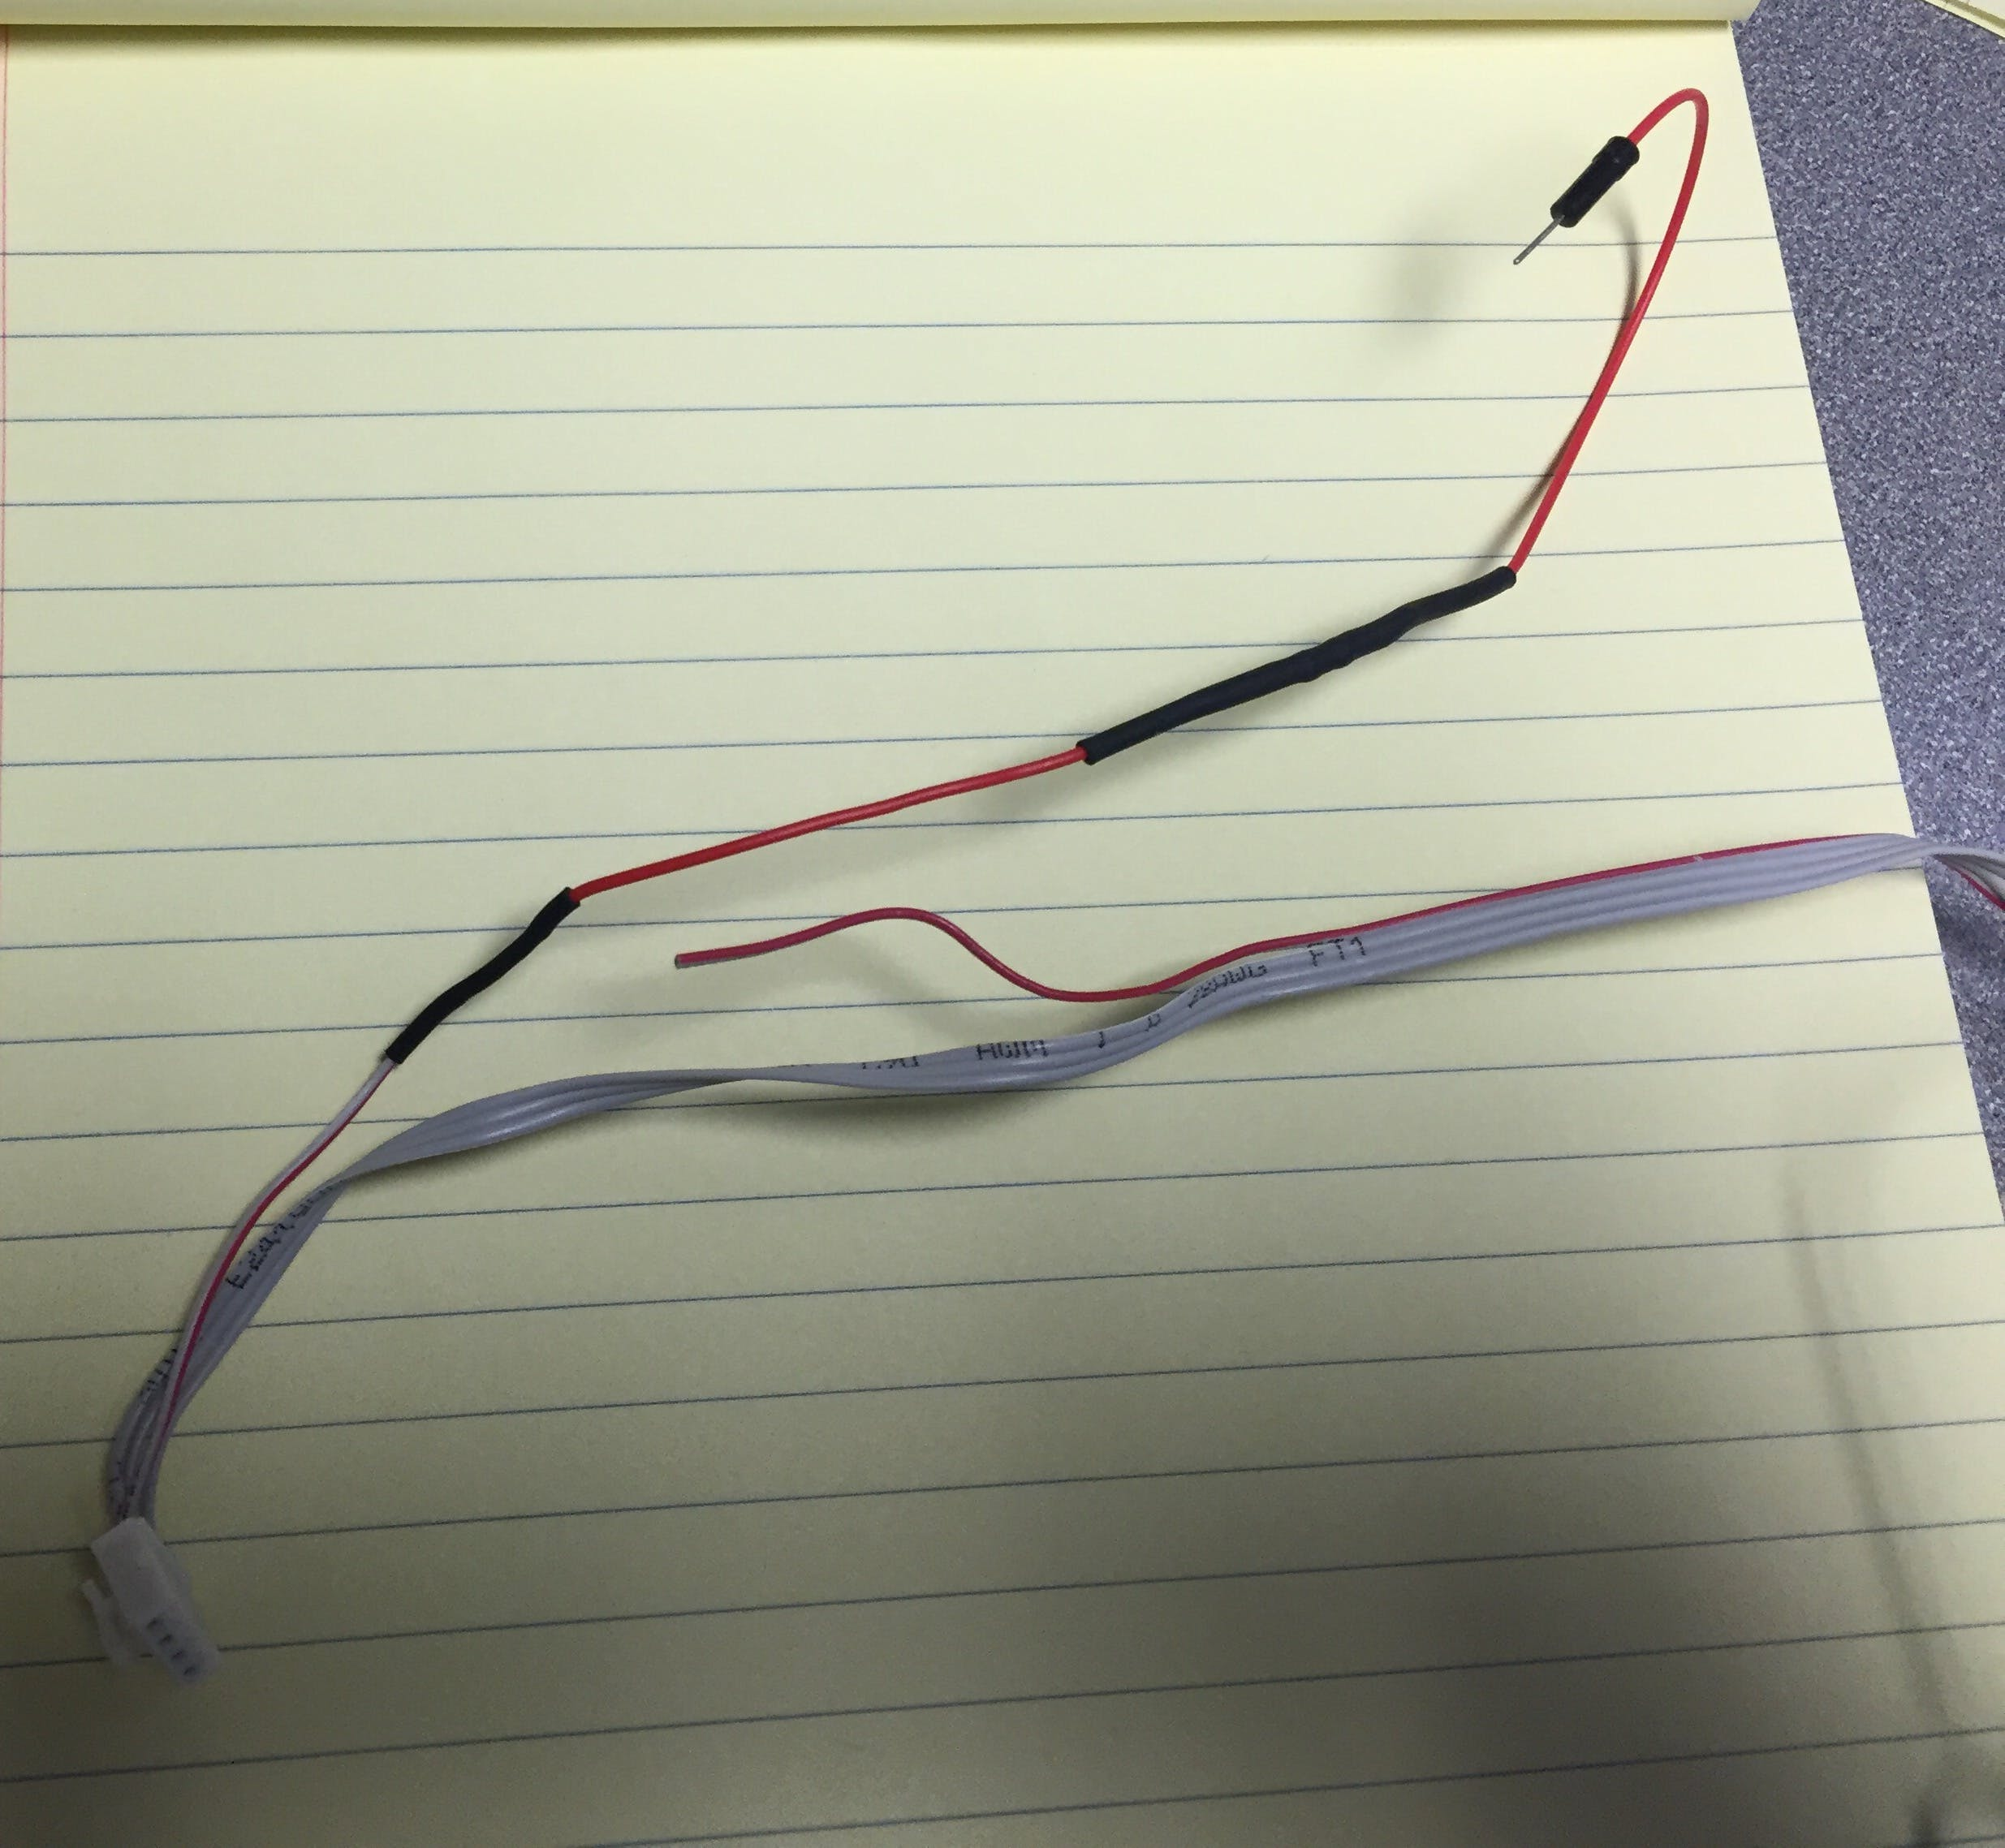 Extended RLY wire